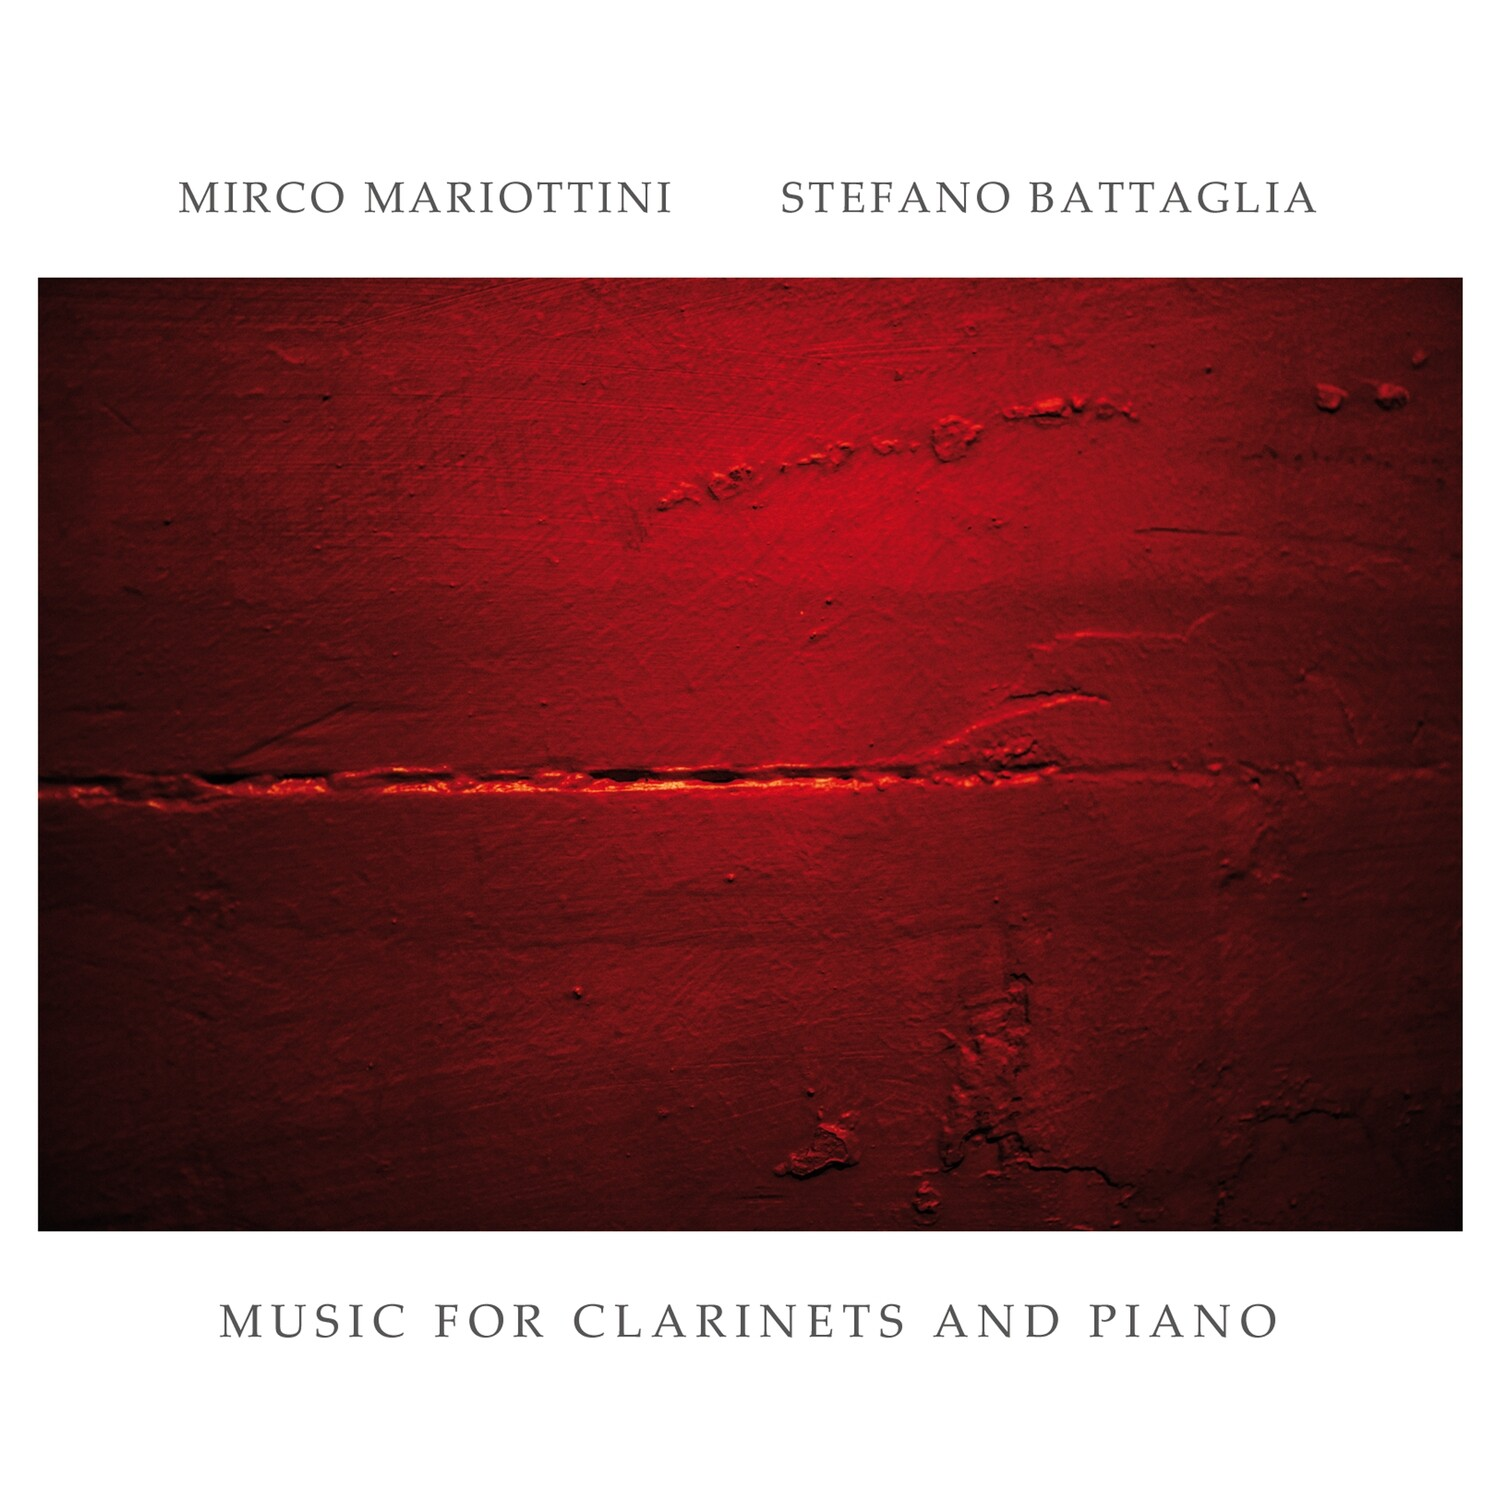 Mirco Mariottini & Stefano Battaglia «Music for Clarinets and Piano»